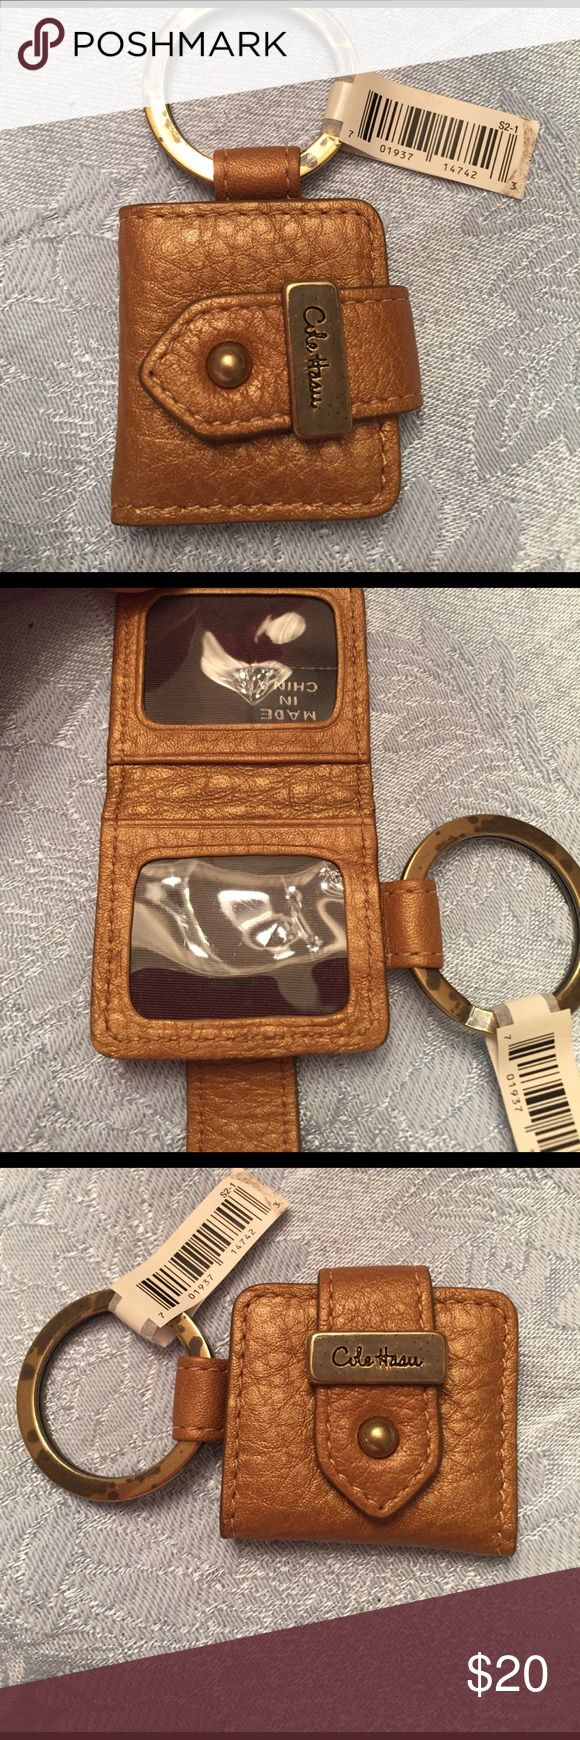 SALE! COLE HAAN photo key chain!! Authentic. COLE HAAN leather, photo, key fob, in the color bronze. Brand new with tags. Guaranteed 100% Authentic. I took it out of the original package for photo purposes. This cute key chain opens up and can hold two pictures. There is some discoloration on the metal key loop; view posted photos. This is perfect to carry your keys and keep precious photos of your loved ones close to you. Cole Haan Accessories Key & Card Holders